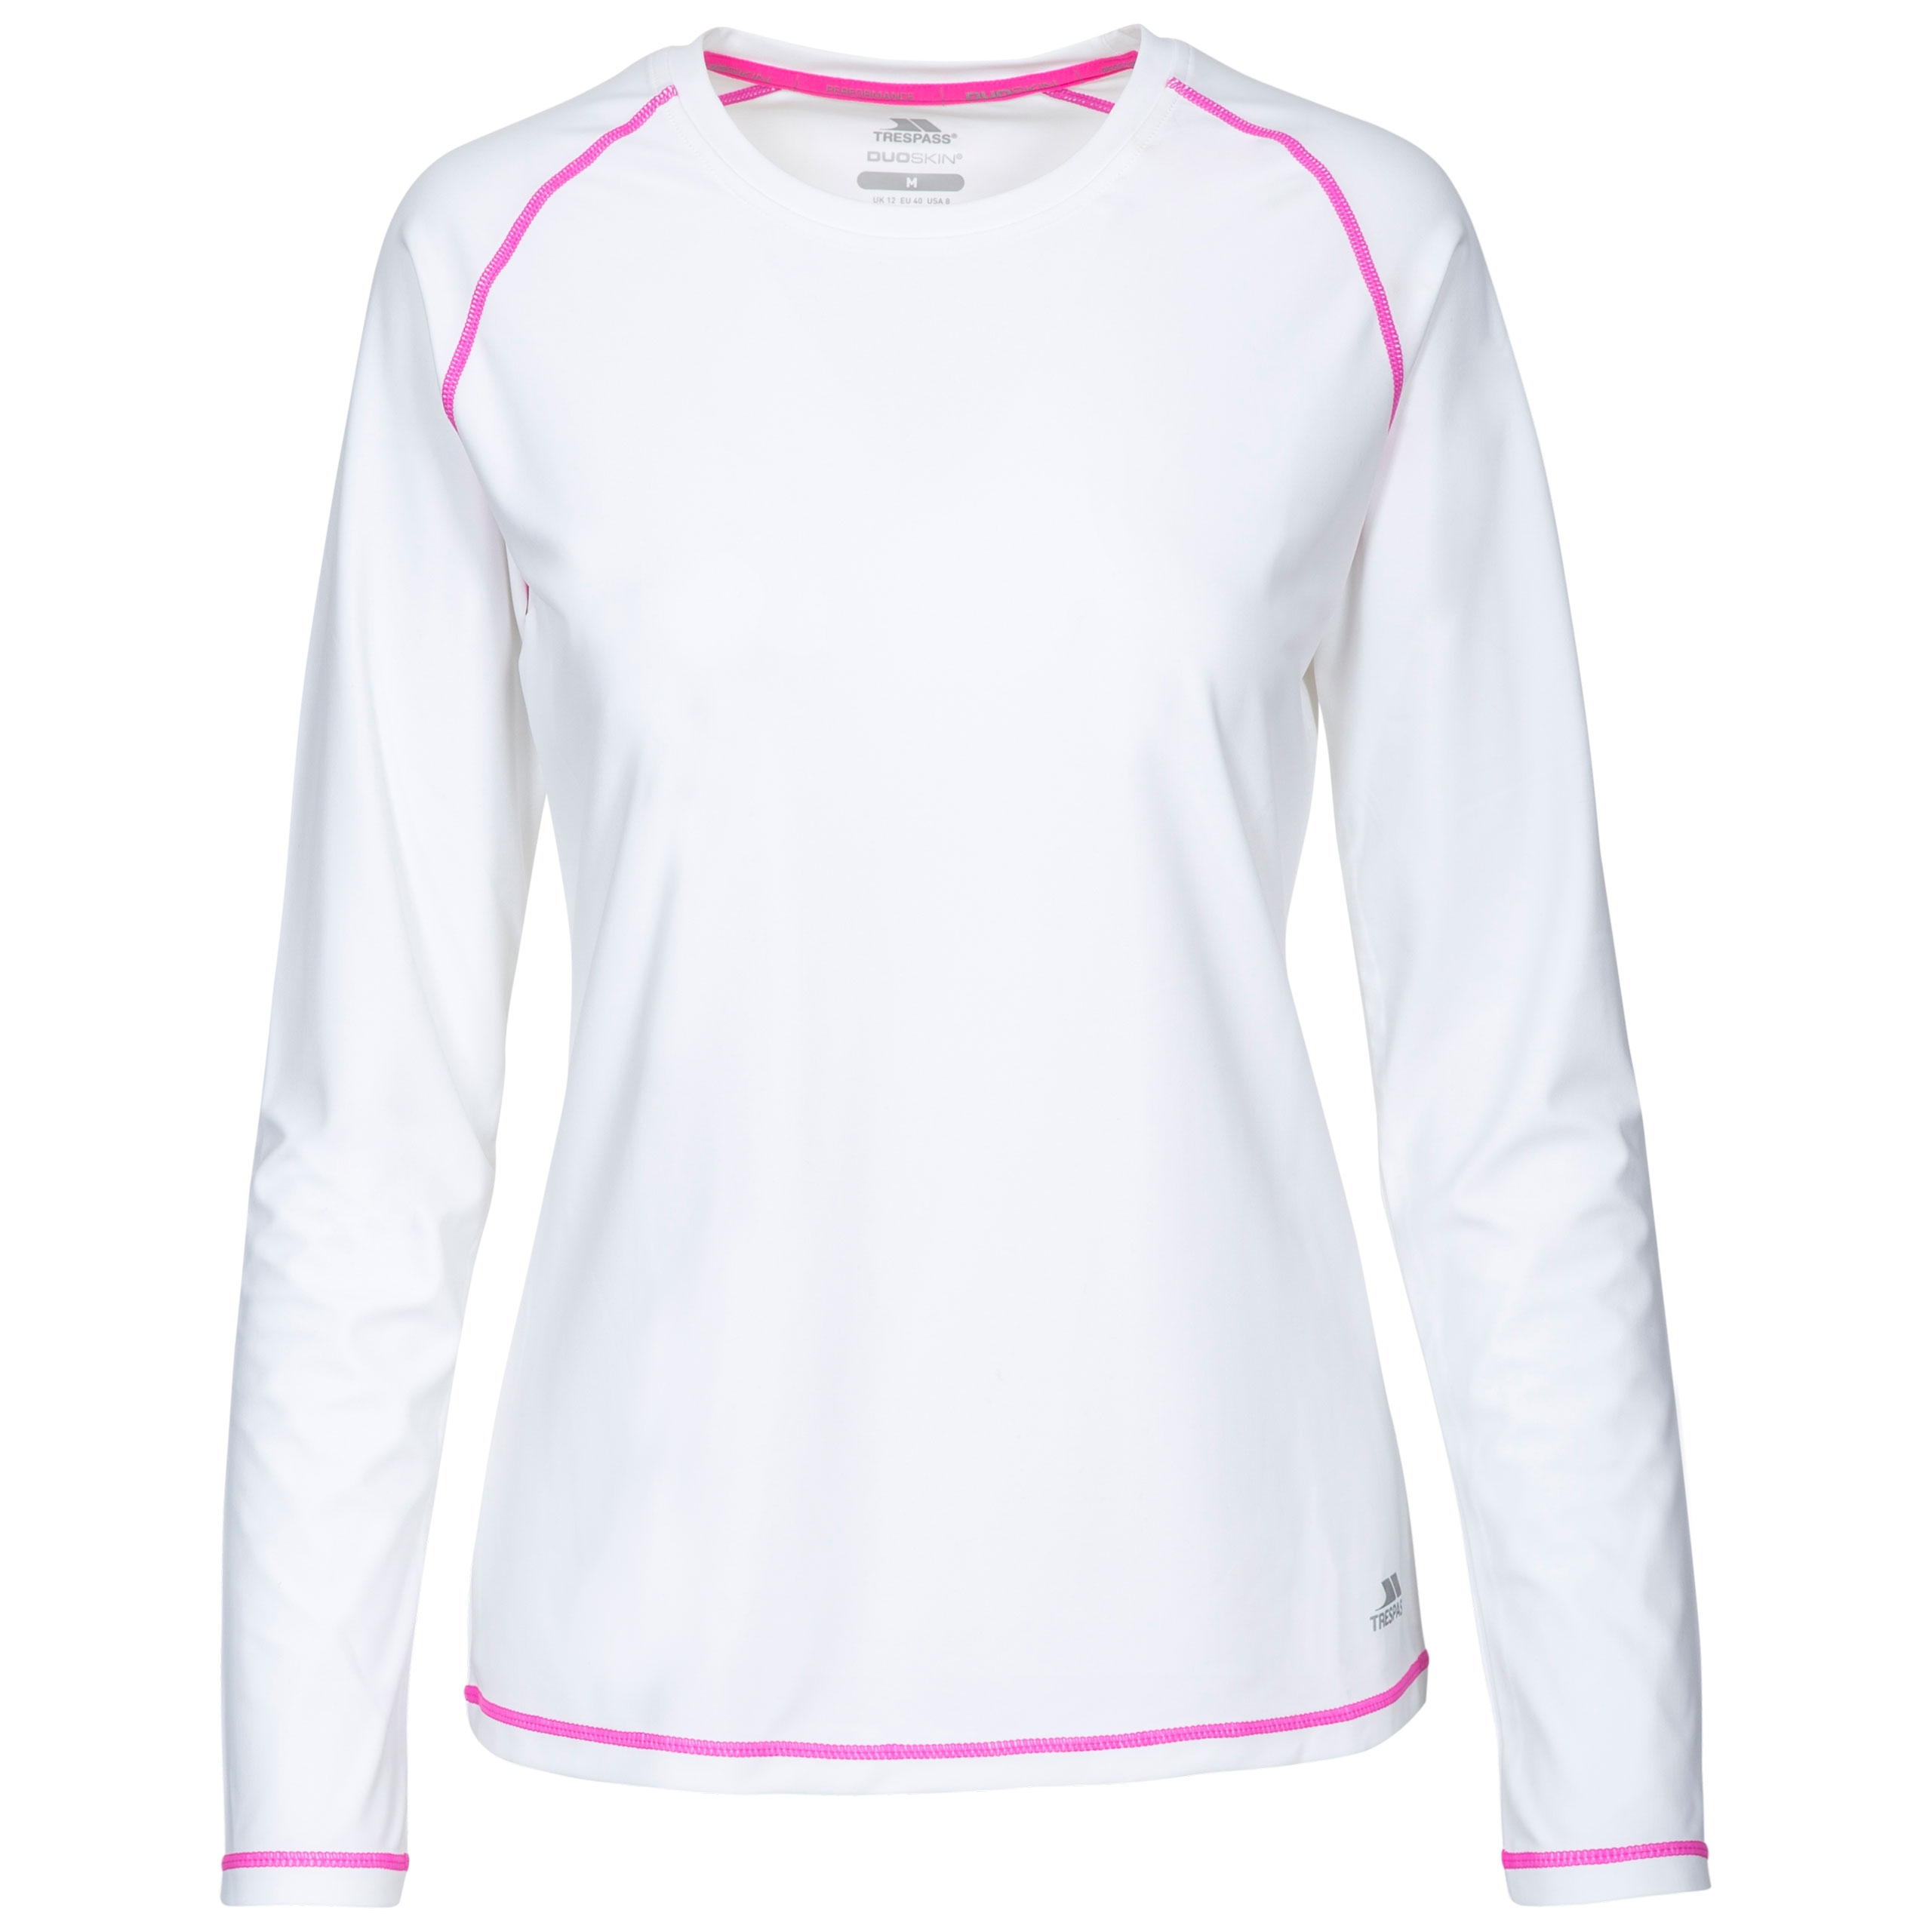 Hasting Womens Quick Dry Long Sleeve T-shirt